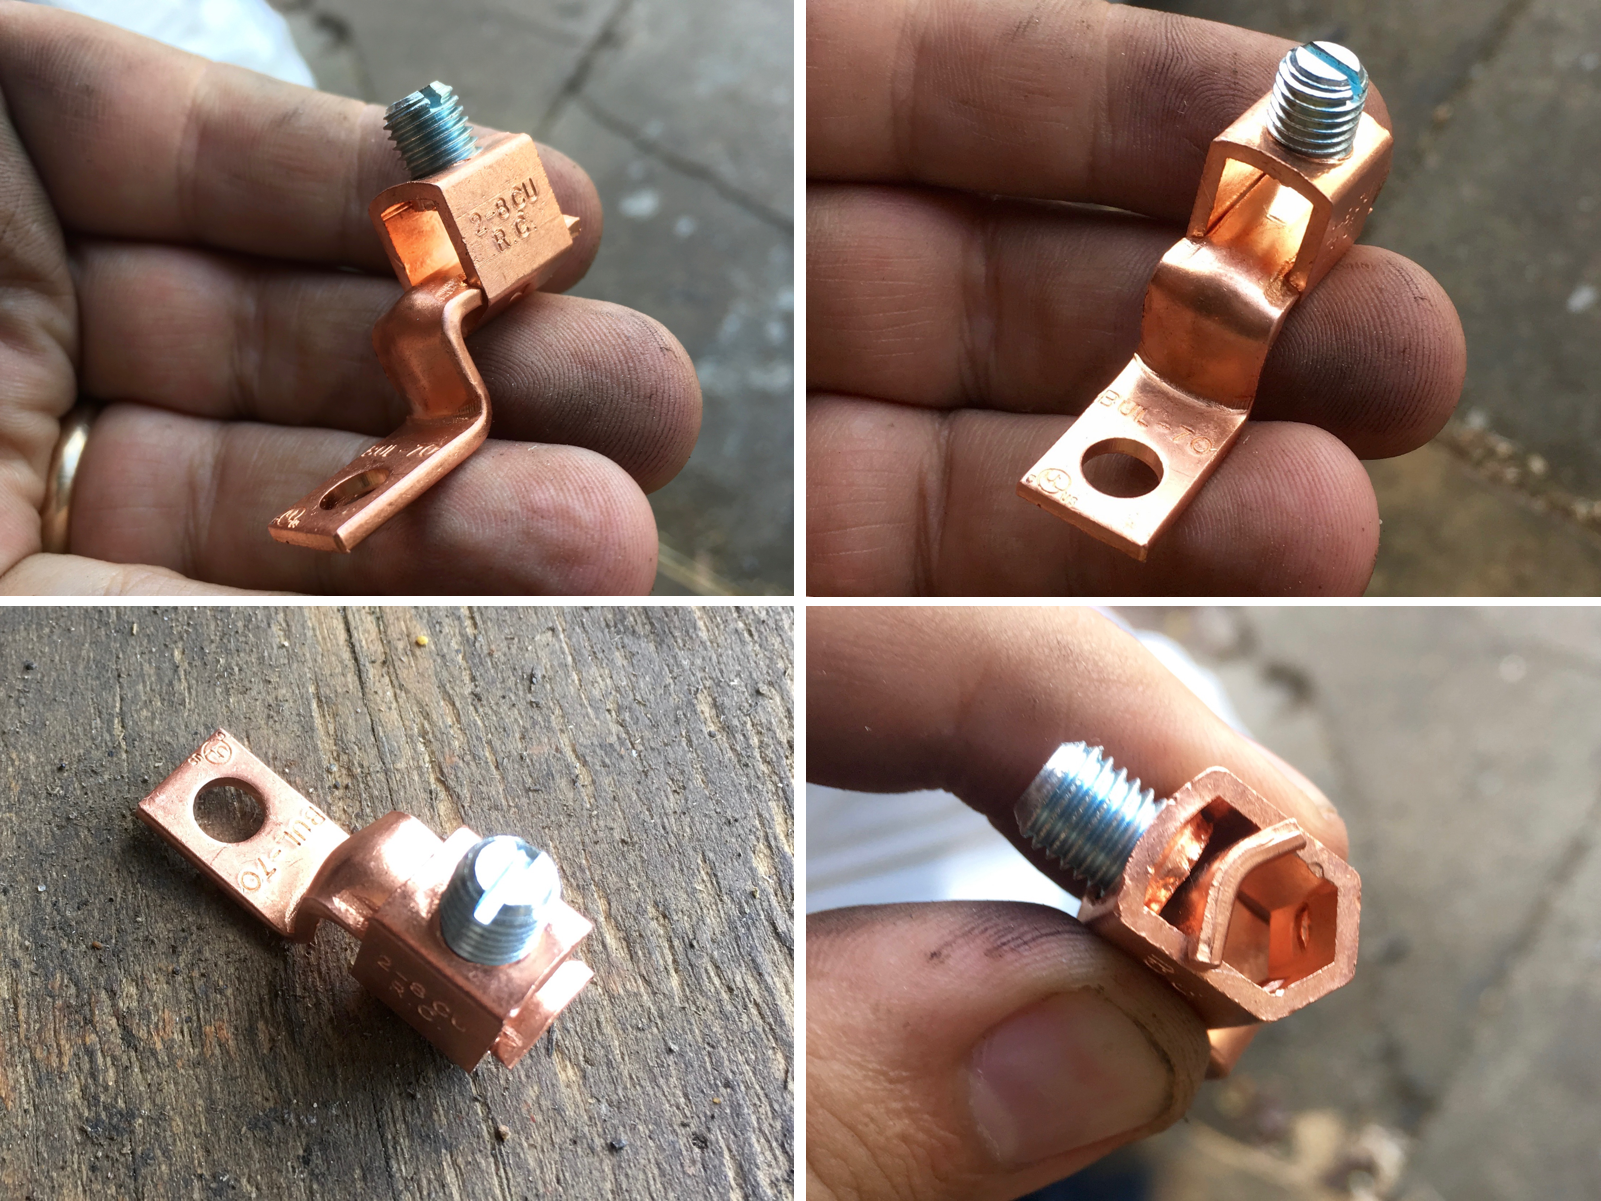 An example of a 4 gauge copper wire lug.  I wound up using 2 gauge lugs to fit over the jumper cable insulation.